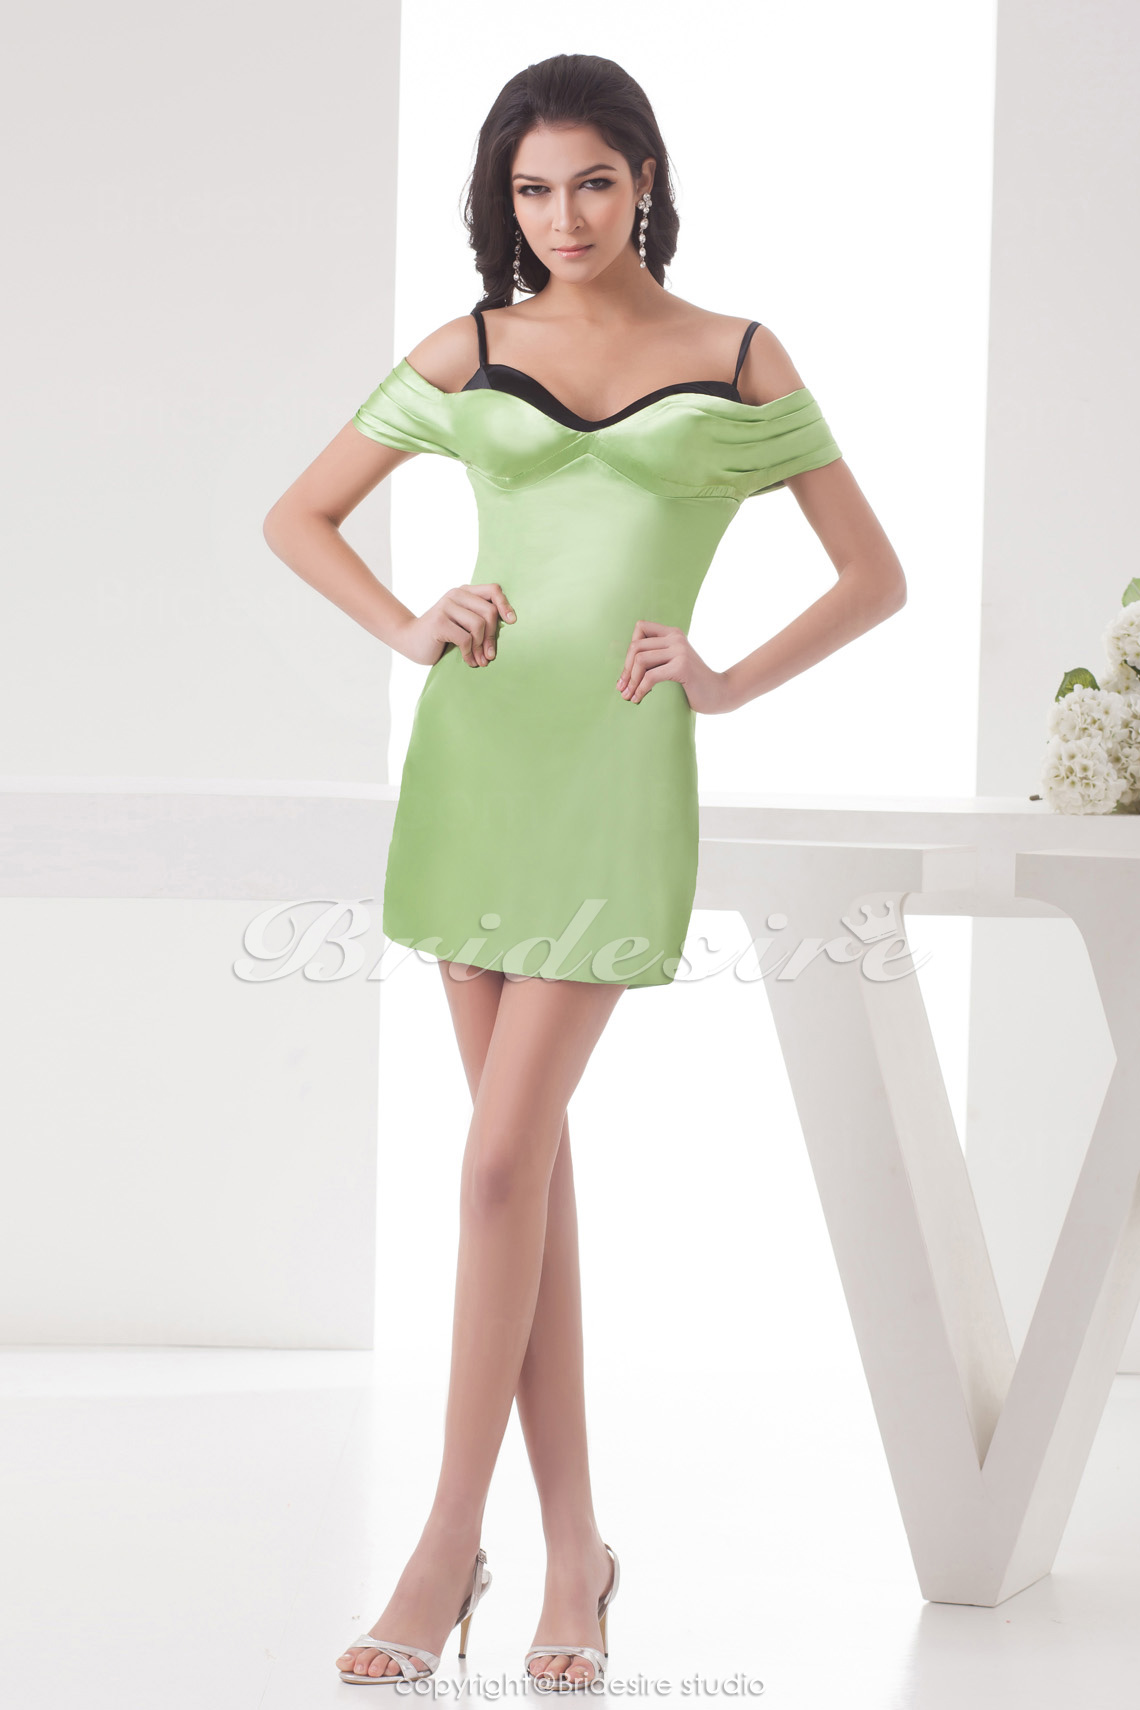 Sheath/Column Spaghetti Straps Off-the-shoulder Short/Mini Sleeveless Satin Dress